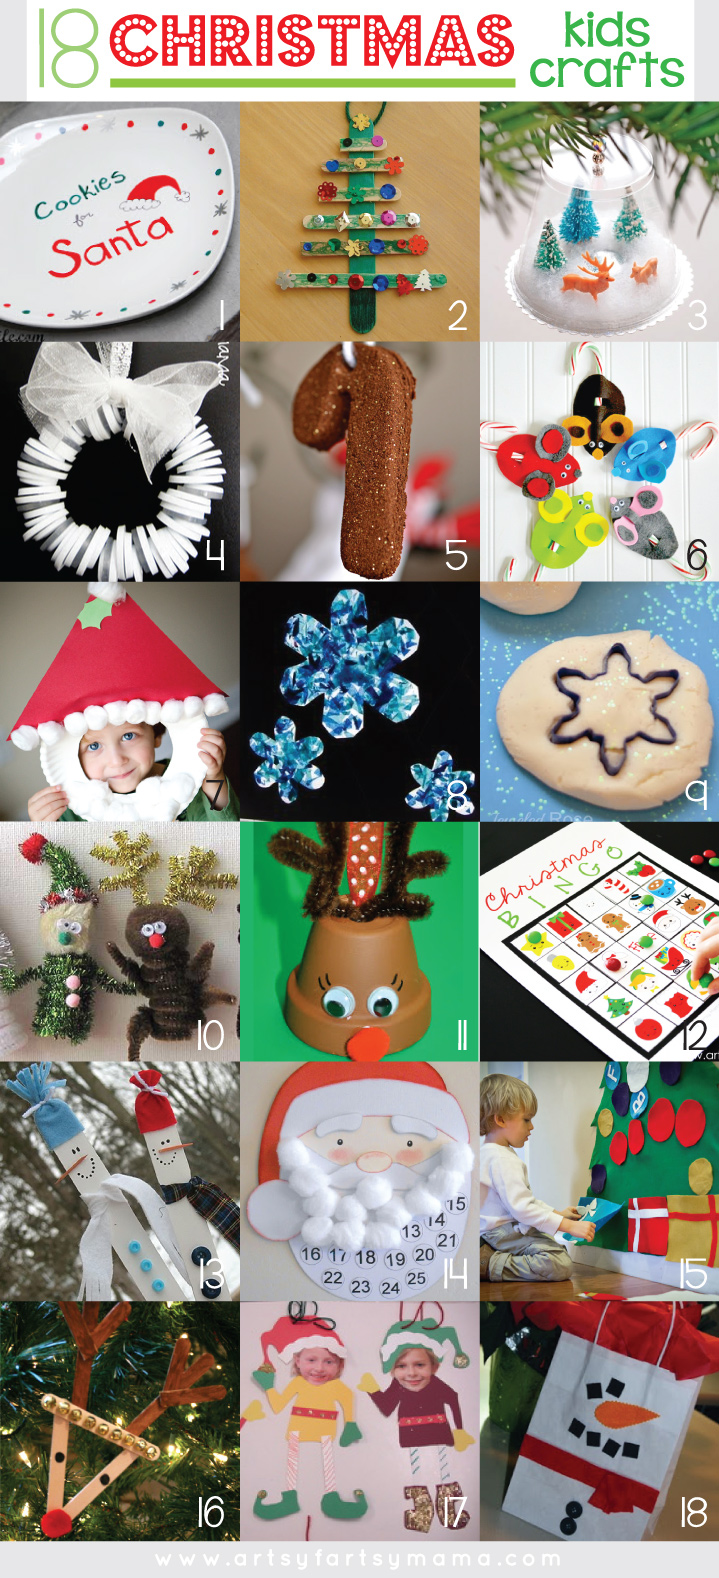 18 Christmas Kids Crafts at artsyfartsymama.com #Christmas #kidscrafts